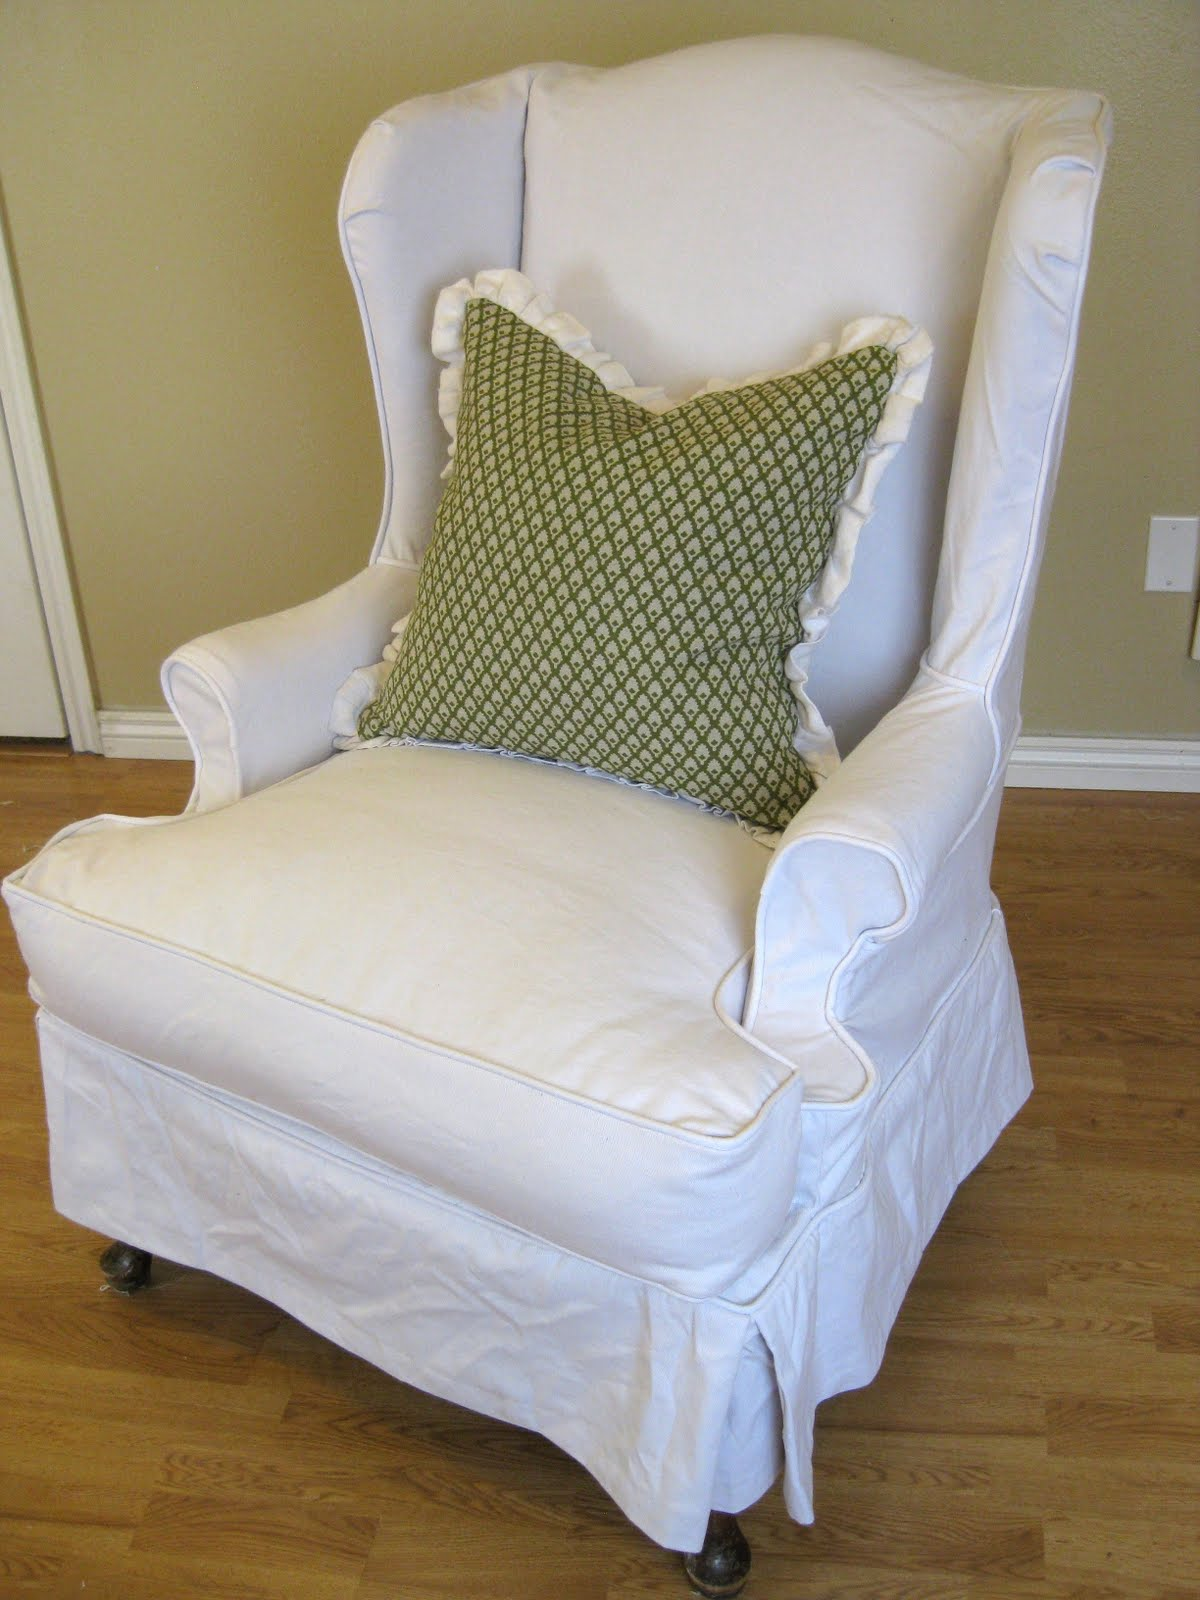 Wingback Chair Slipcover  an Ultimate Comfort of Relaxing